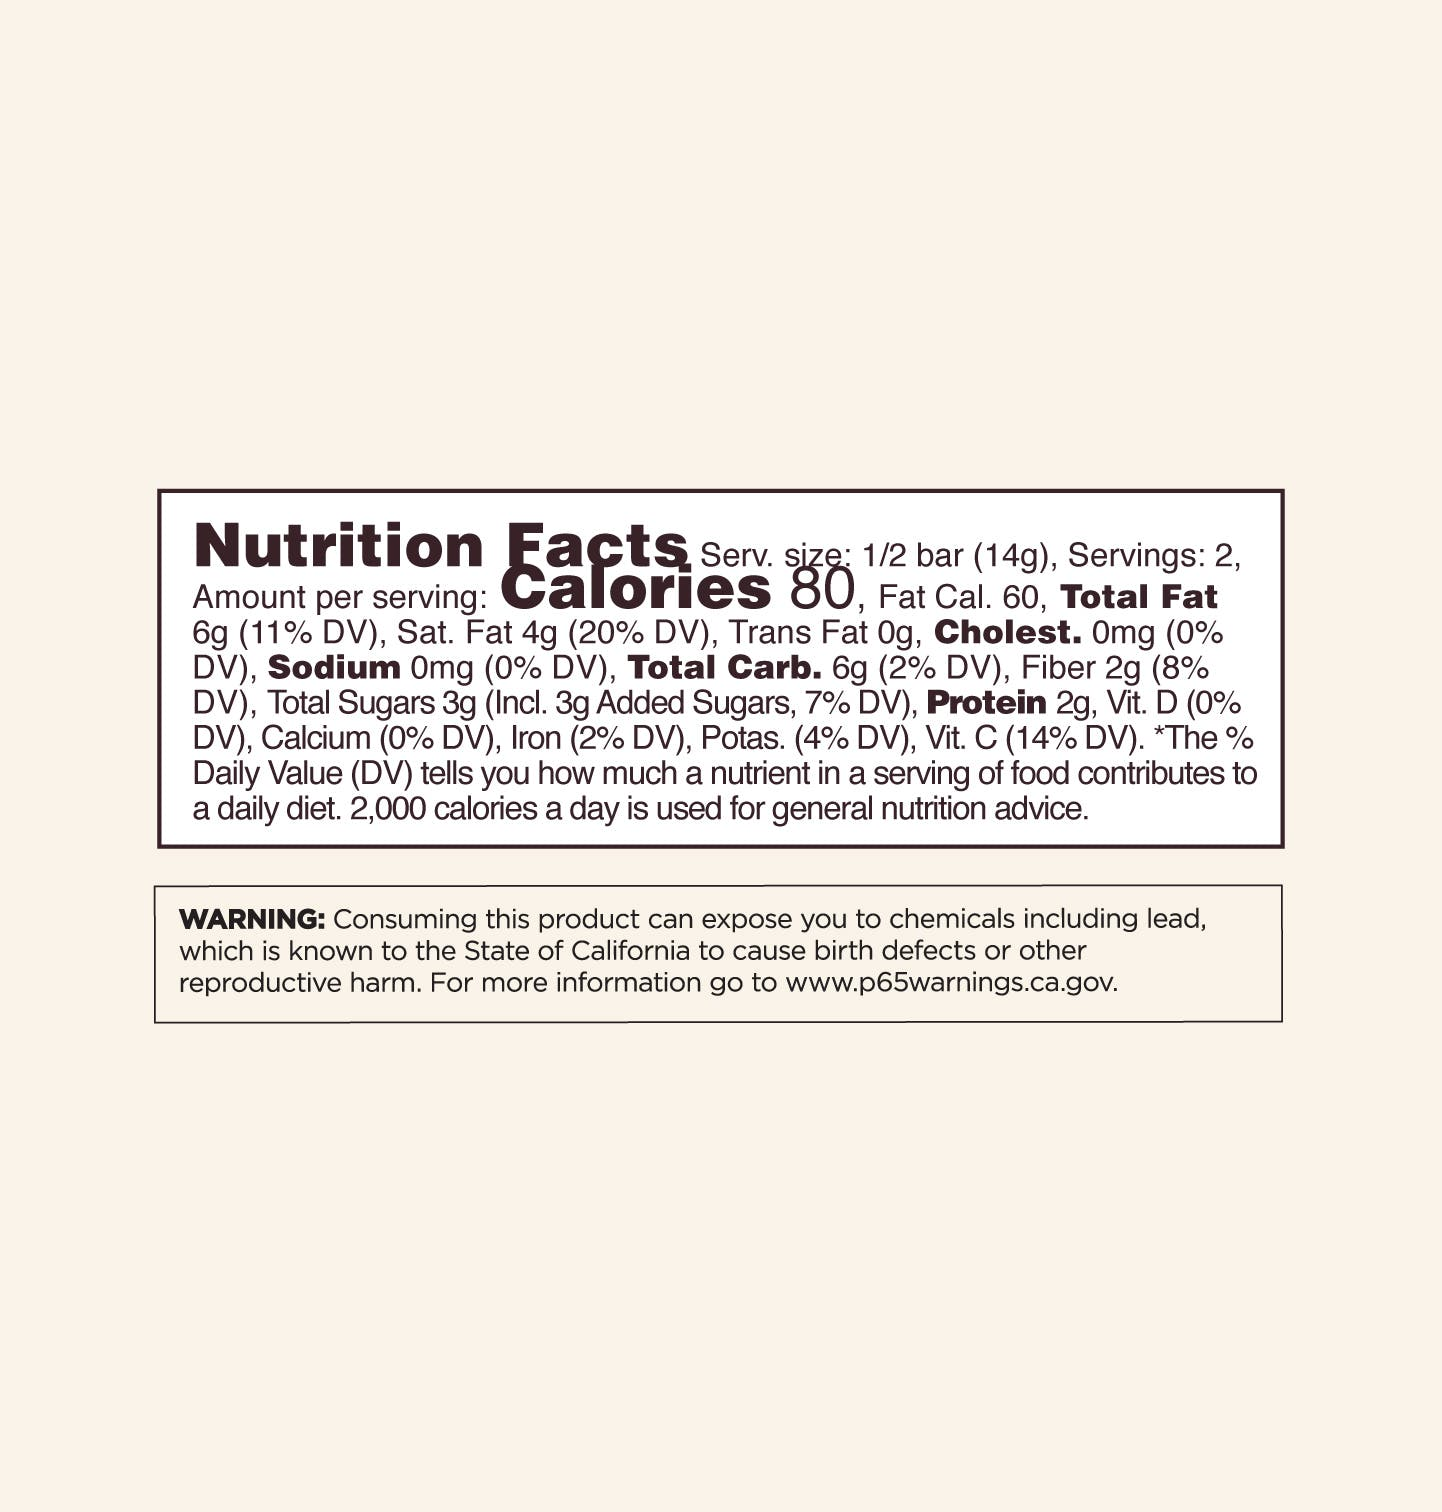 Chocolate Nutrition Facts Panel